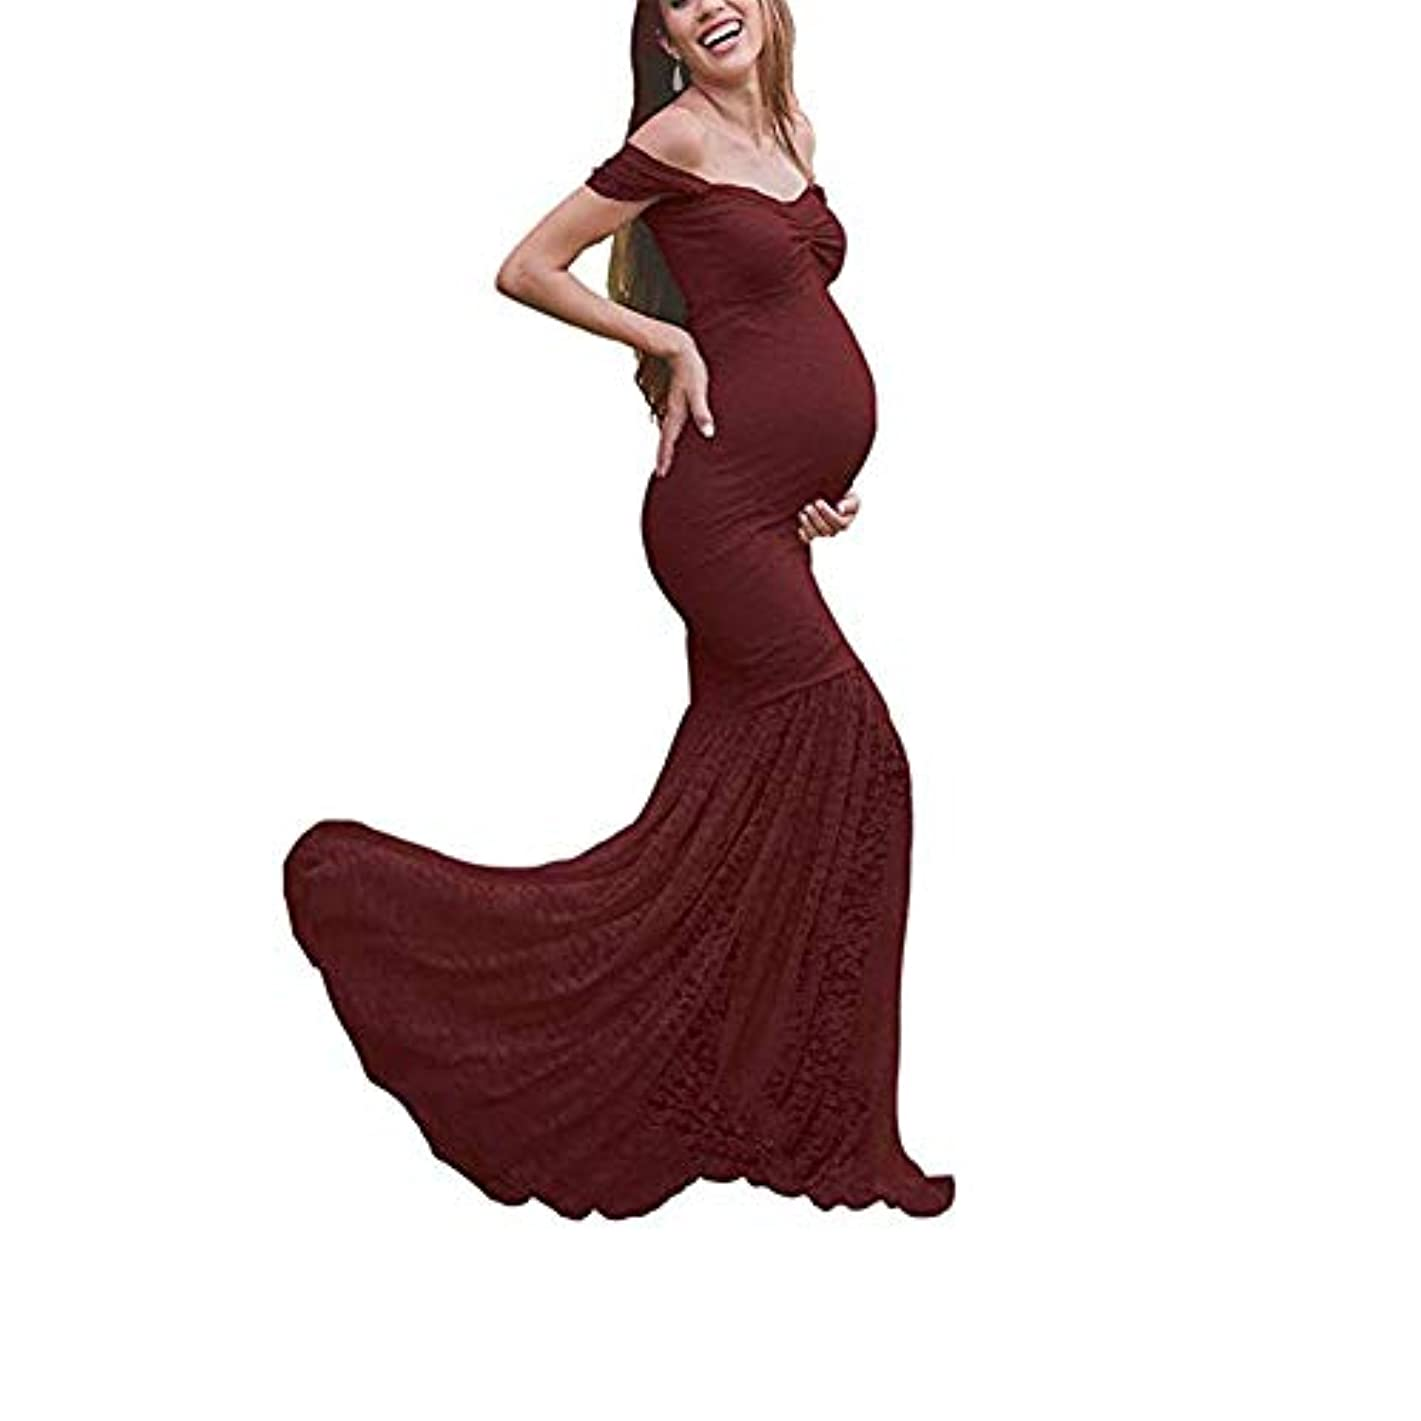 Women's Off Shoulder Ruffle Sleeves Lace Mermaid Maternity Slim Fit Gown Maxi Bridesmaid Photography Dress